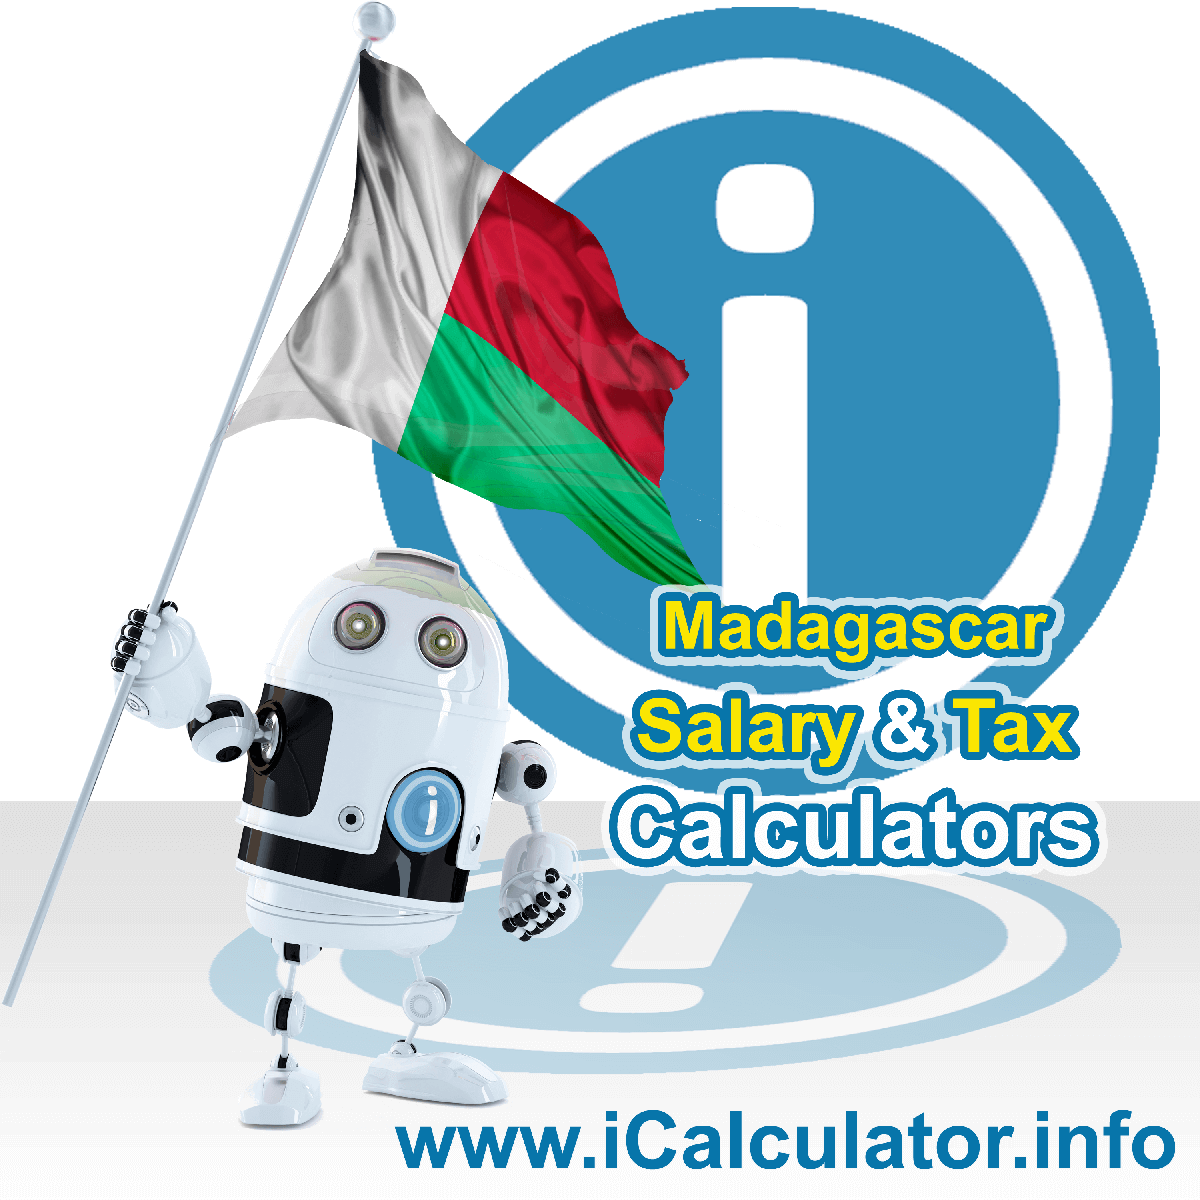 Madagascar Wage Calculator. This image shows the Madagascar flag and information relating to the tax formula for the Madagascar Tax Calculator